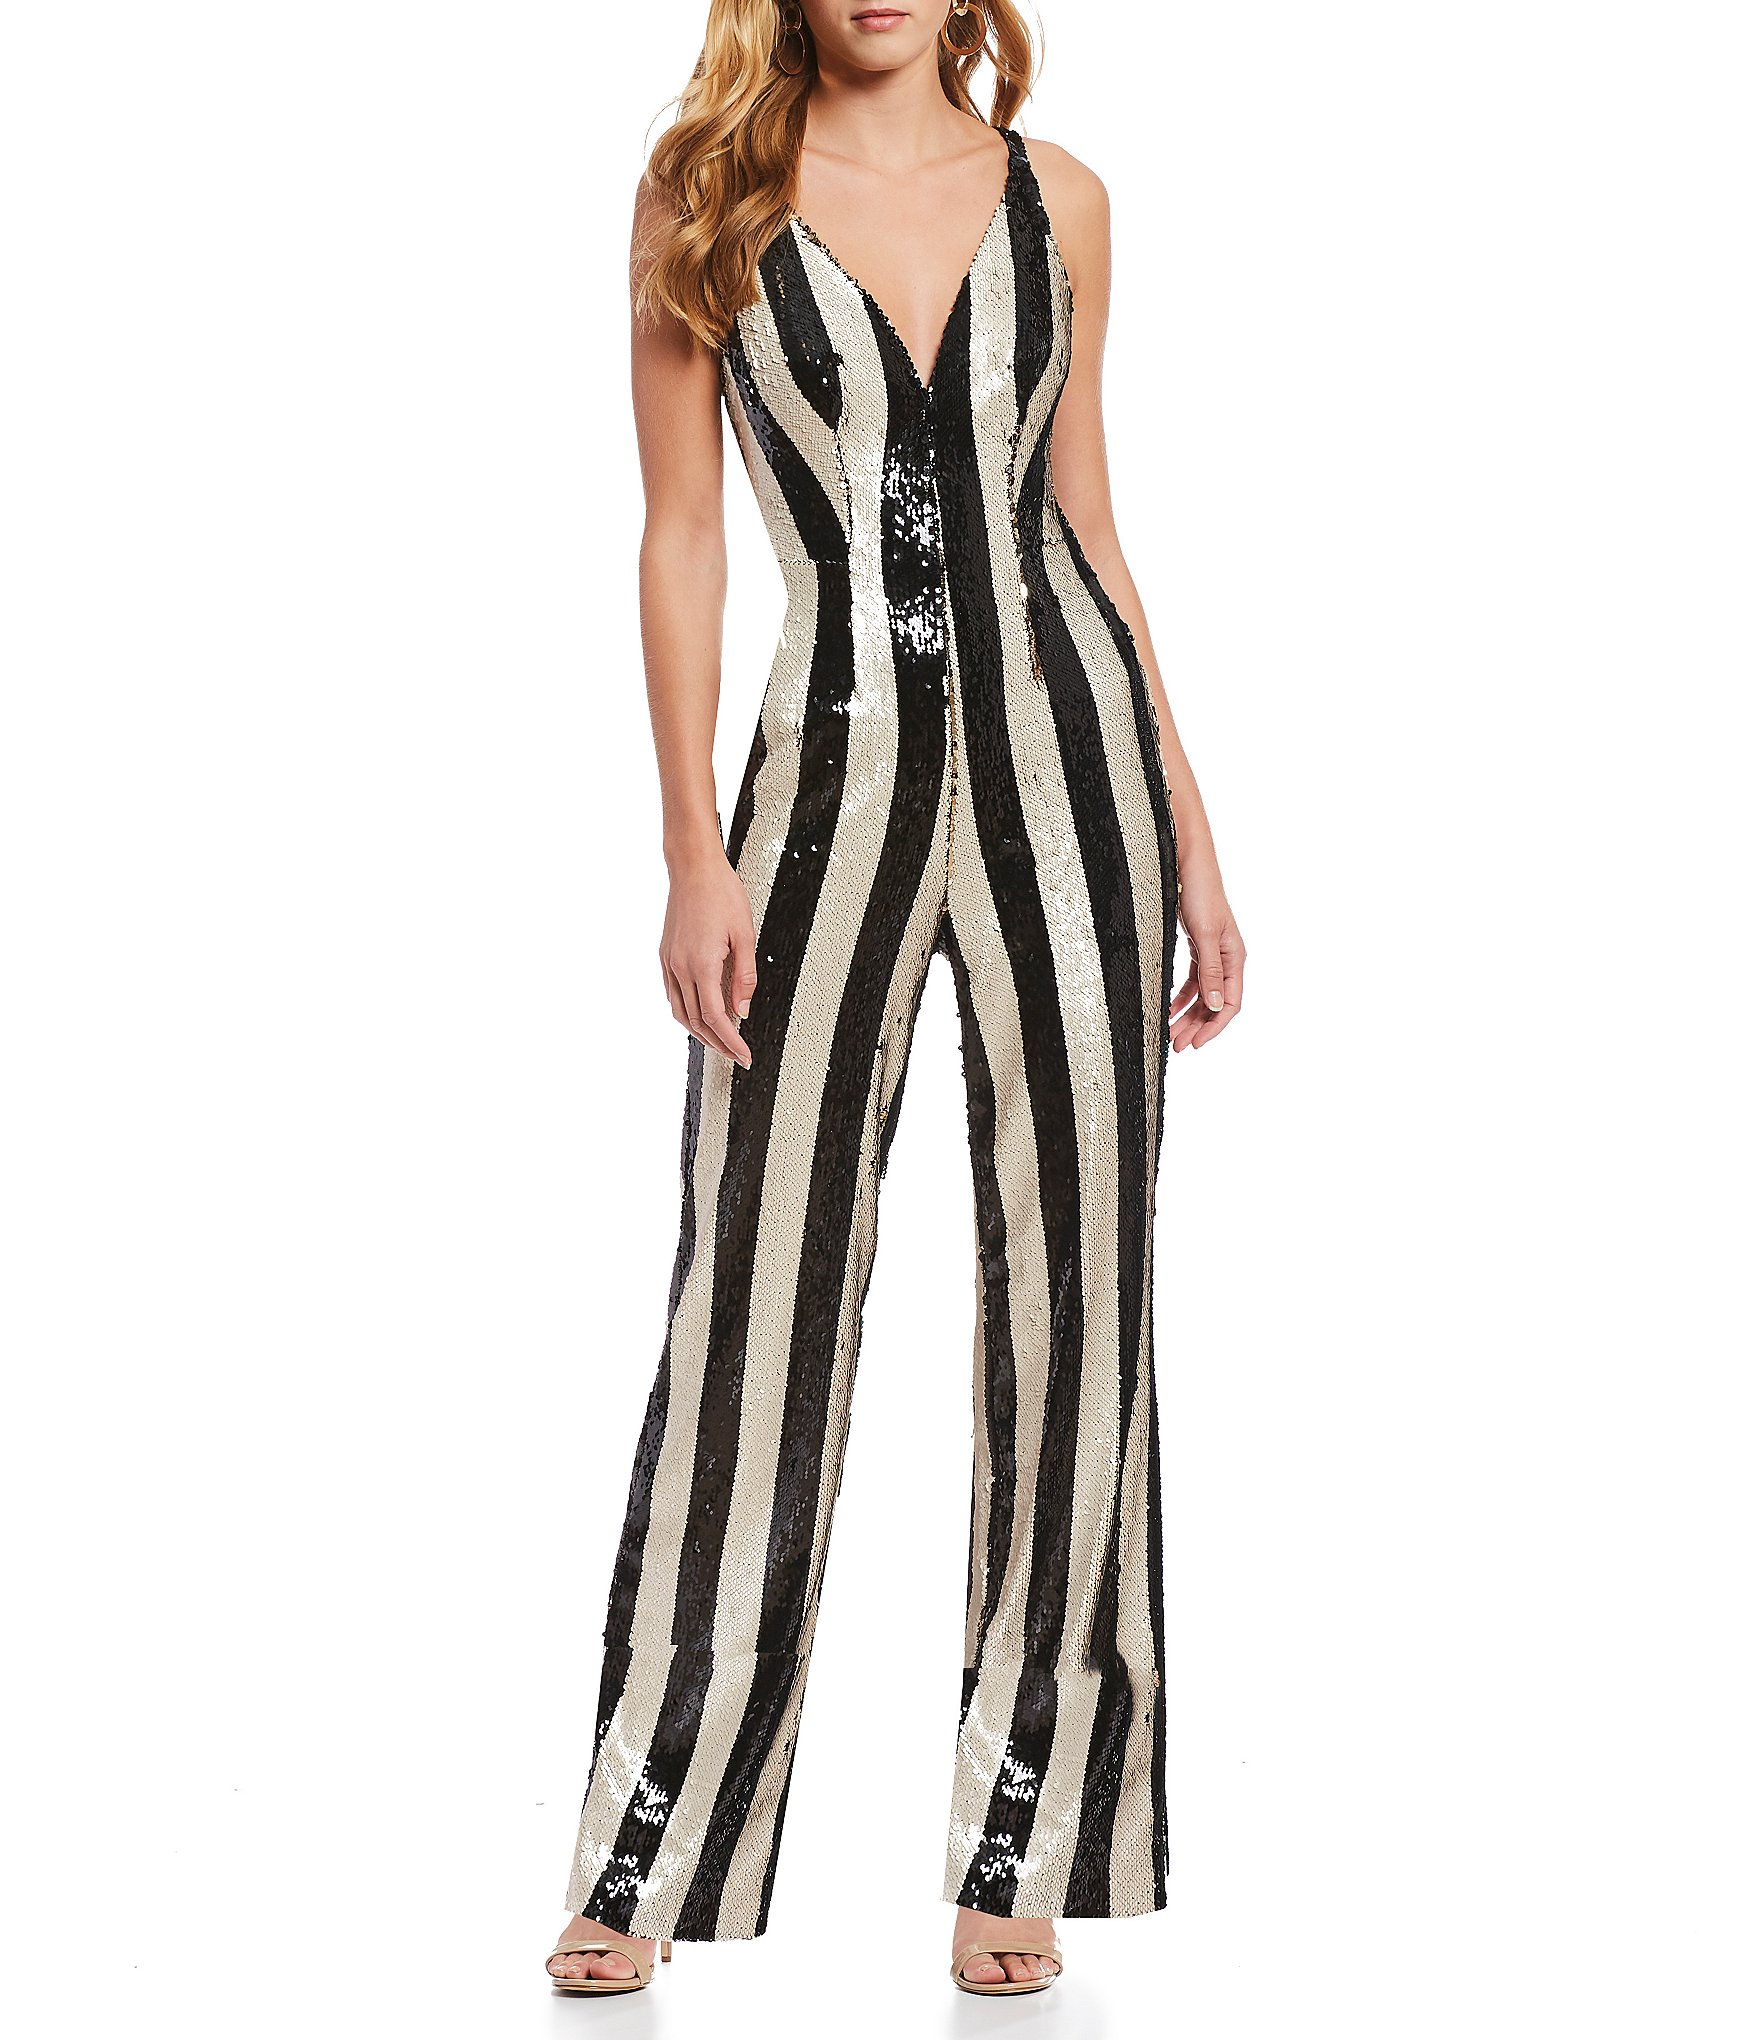 Sequin Womens Jumpsuits Rompers Dillards Dillards